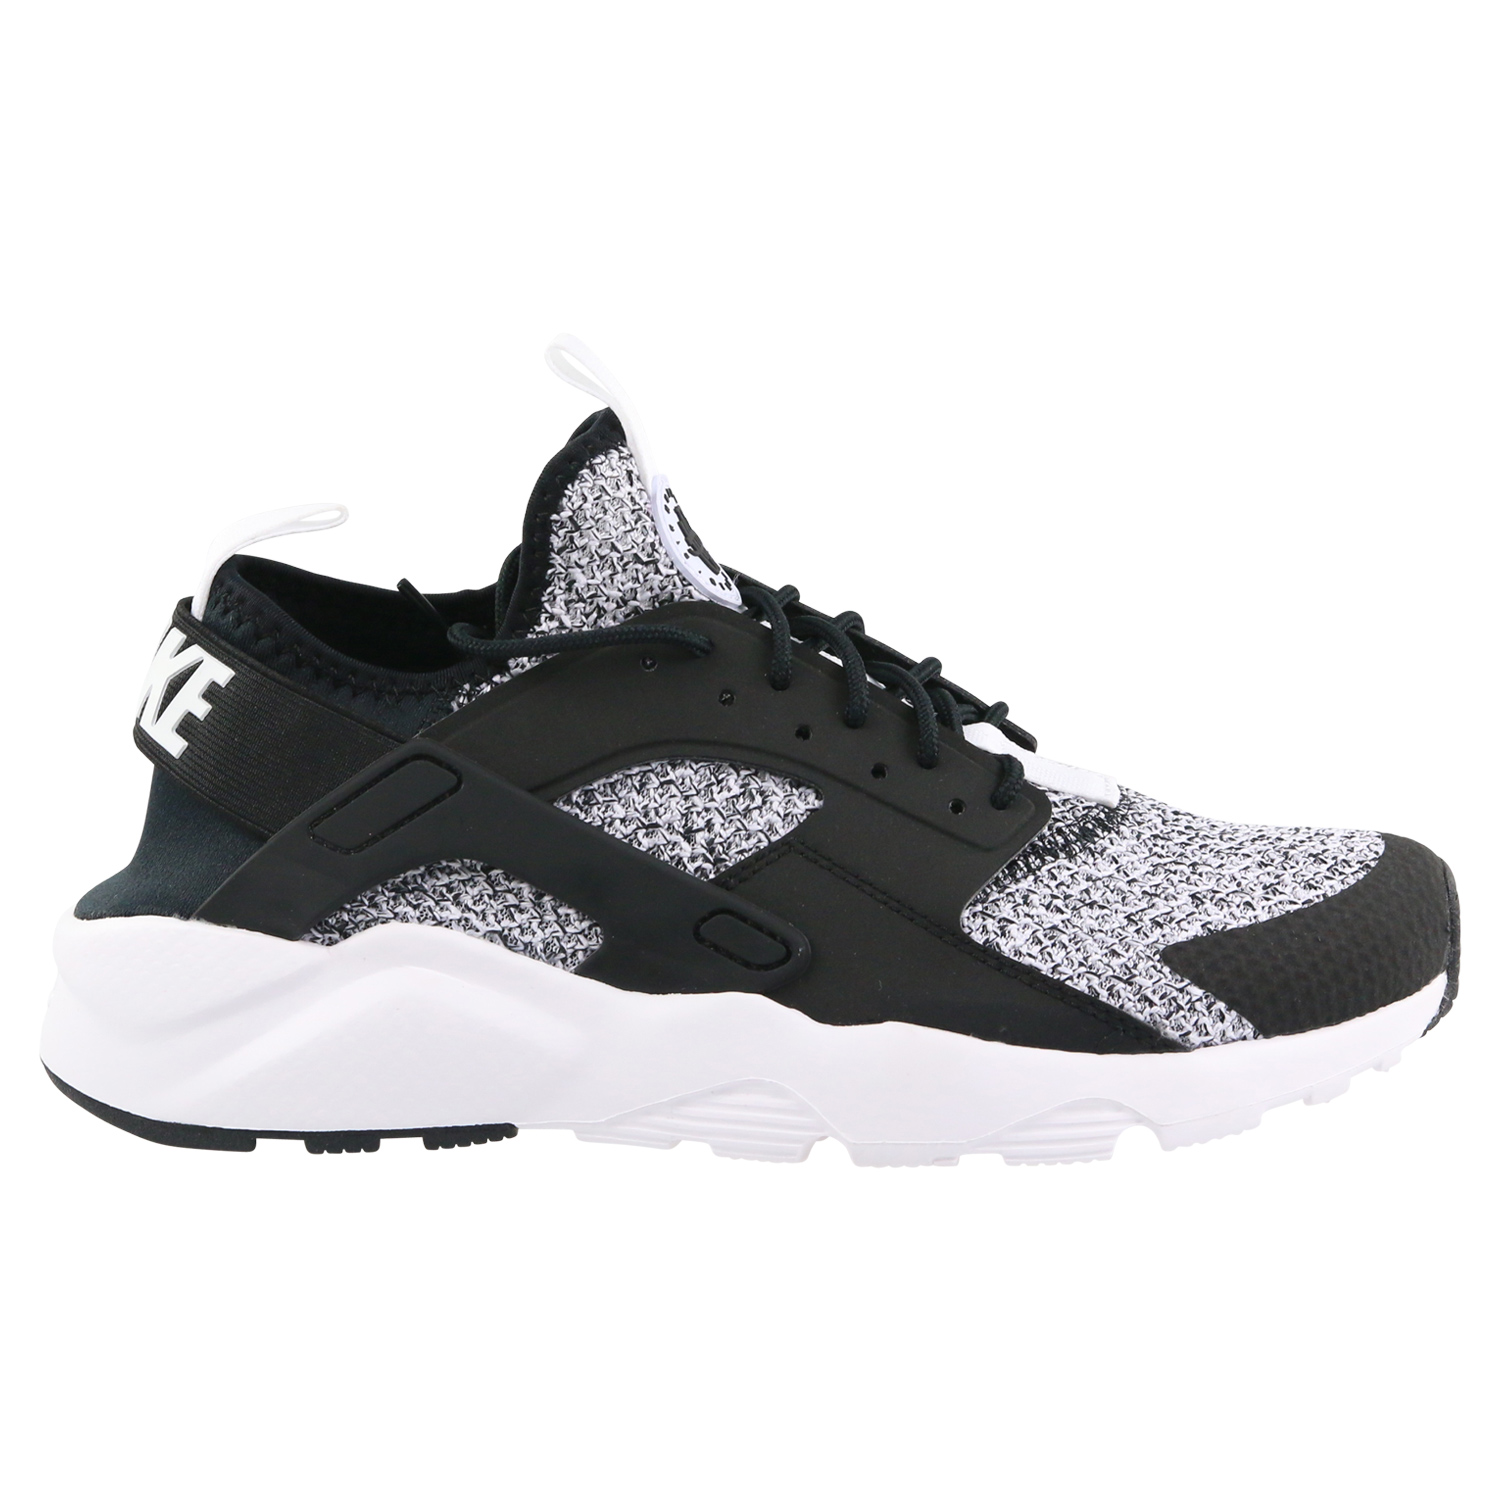 low priced 7103f 6a86d Nike Air Huarache Run Ultra SE Sneaker Herren Sneaker